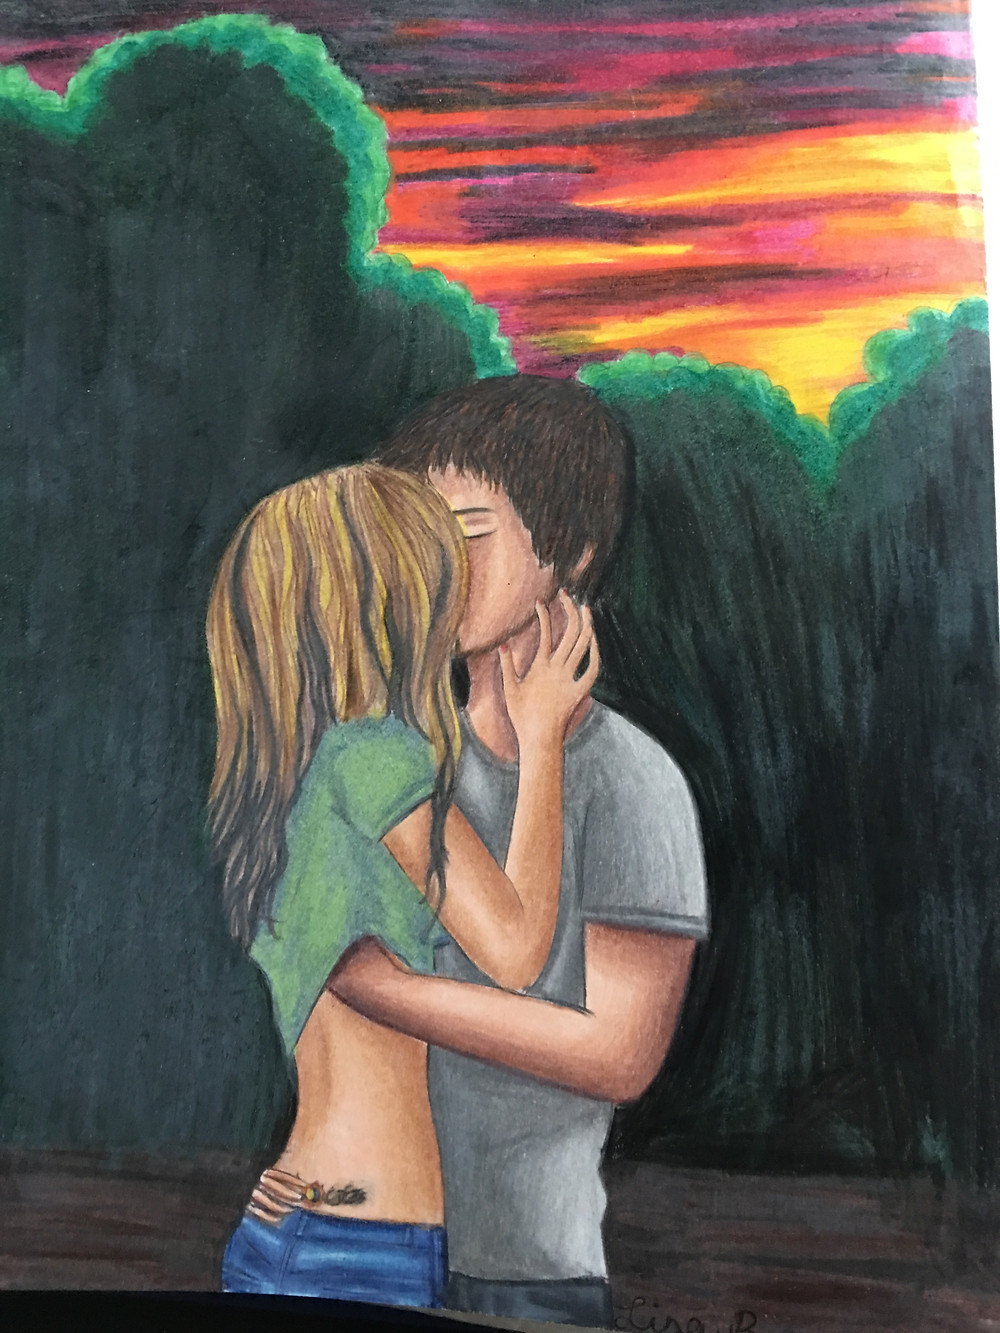 couple drawing - wood pencils - kissing with hand up shirt and sunset